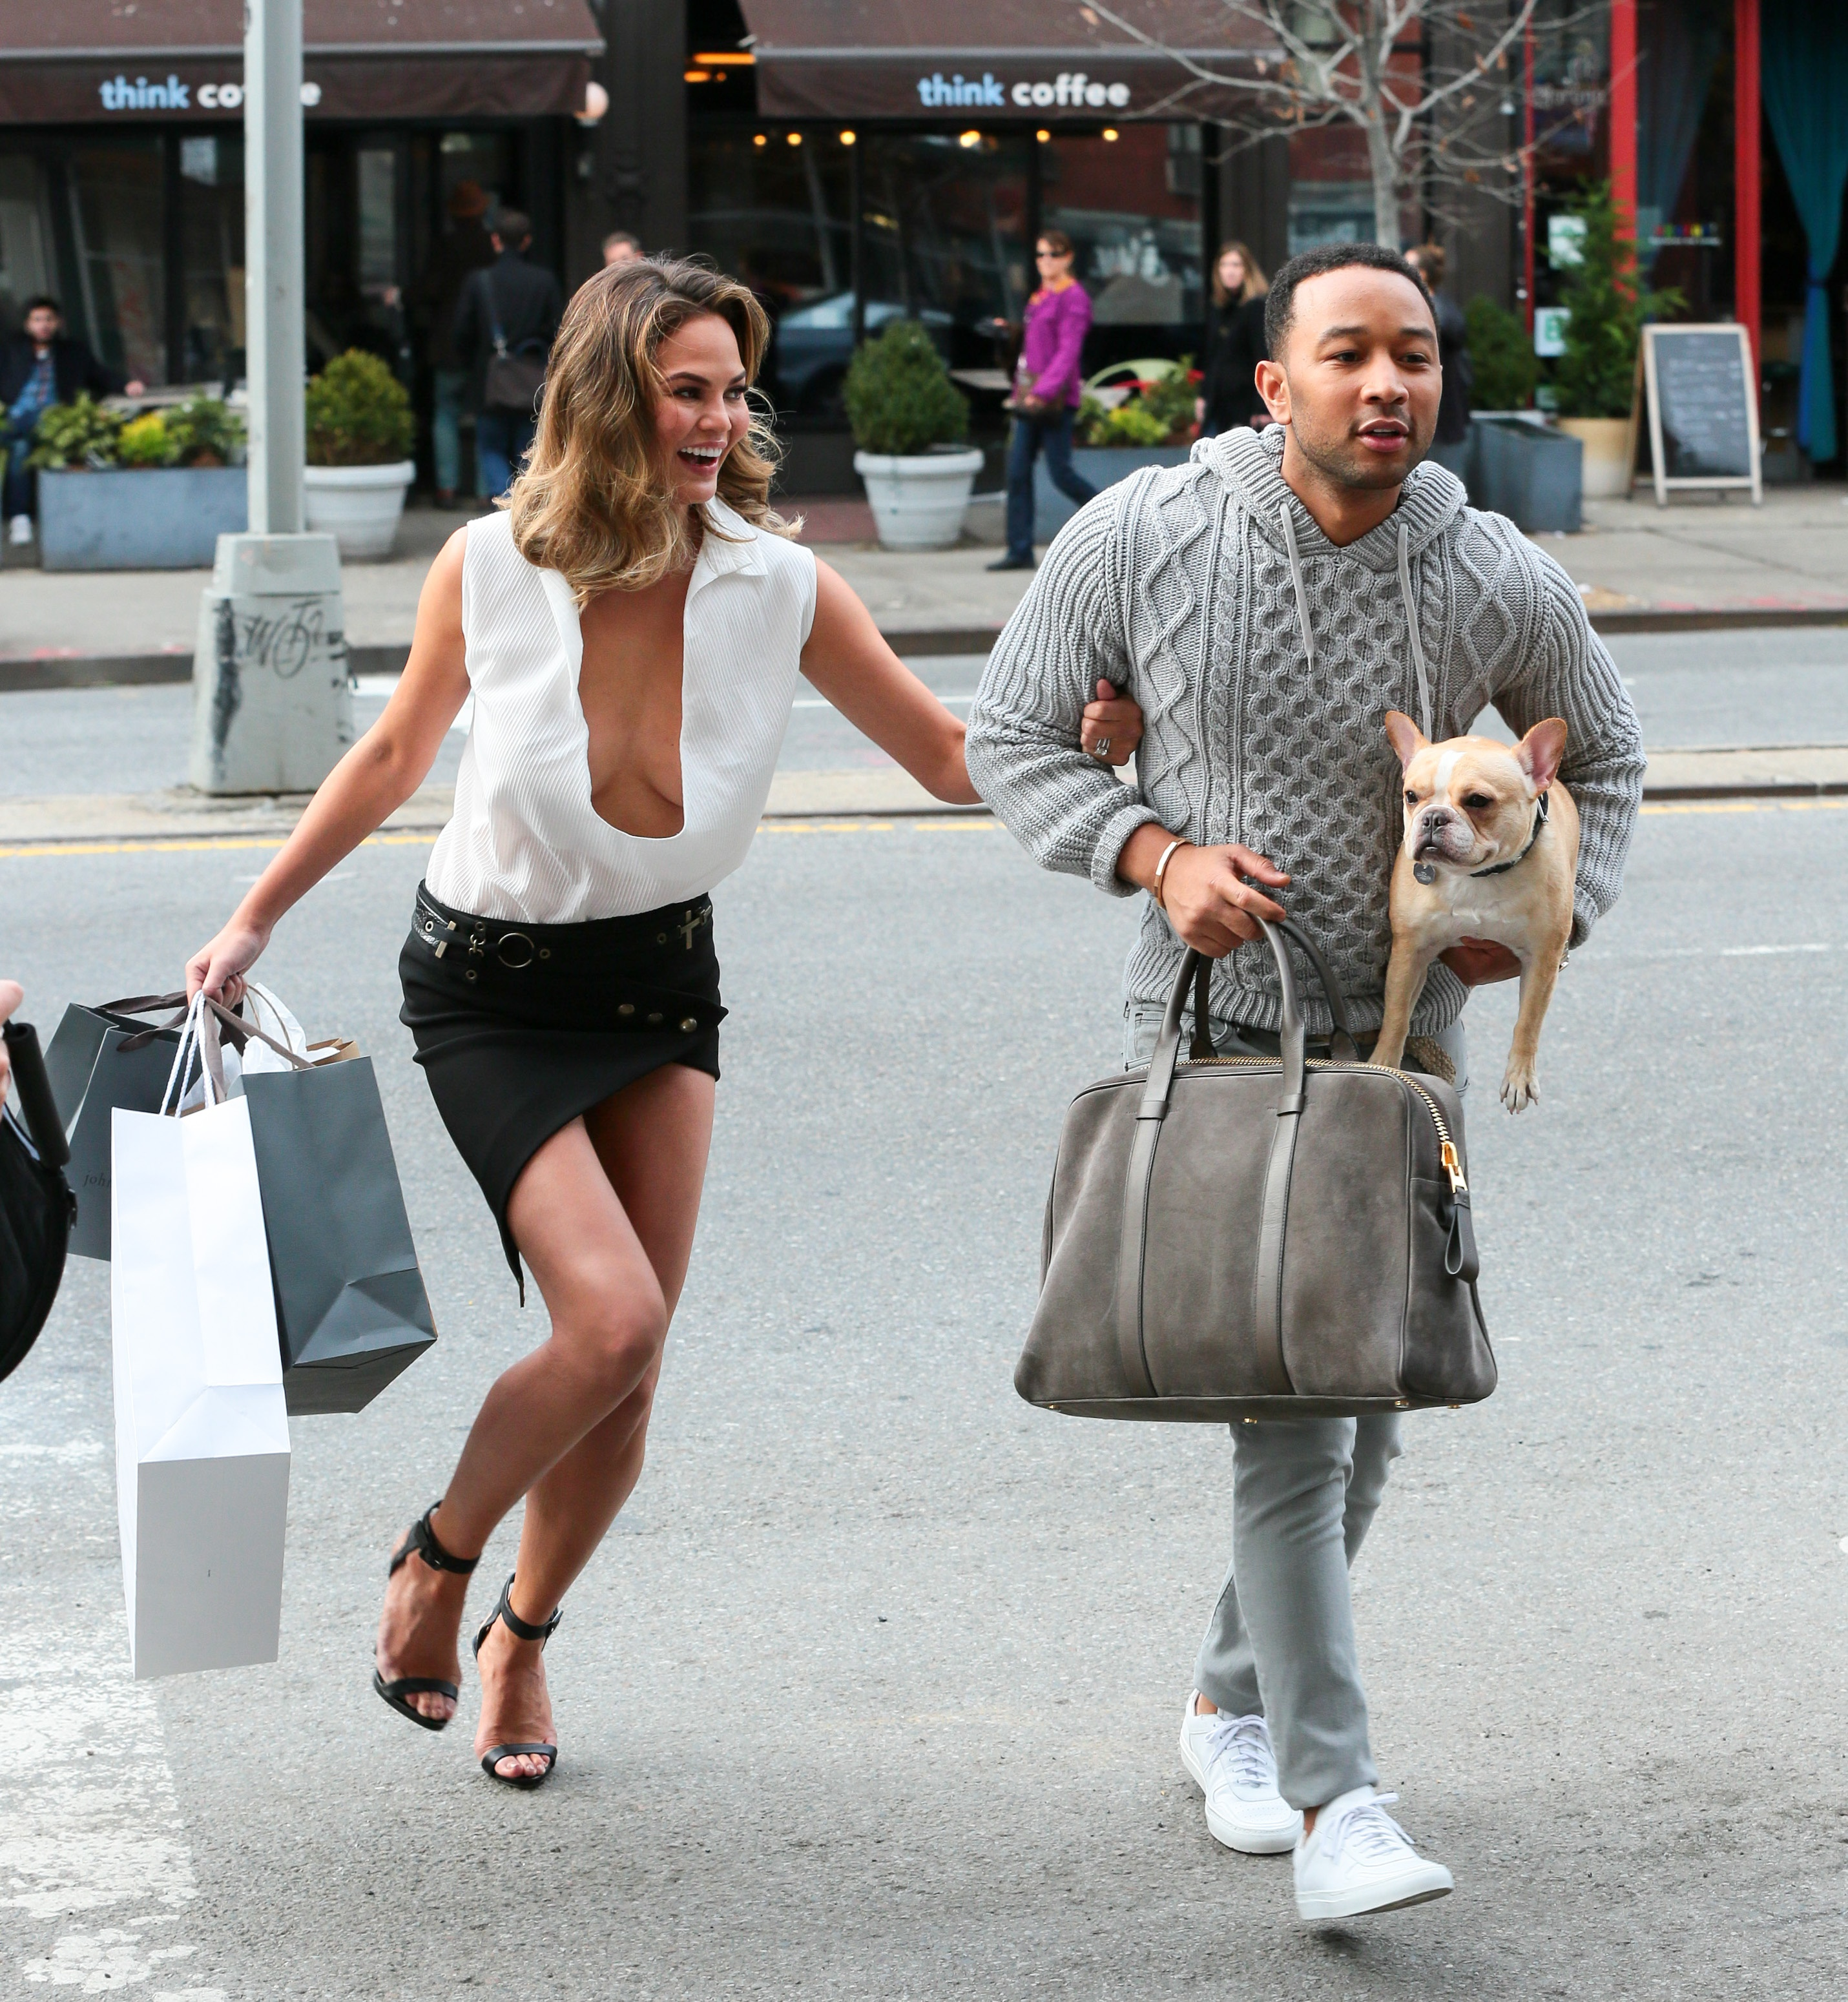 Chrissy Teigen And John Legend Run With Their Pup, Pippa